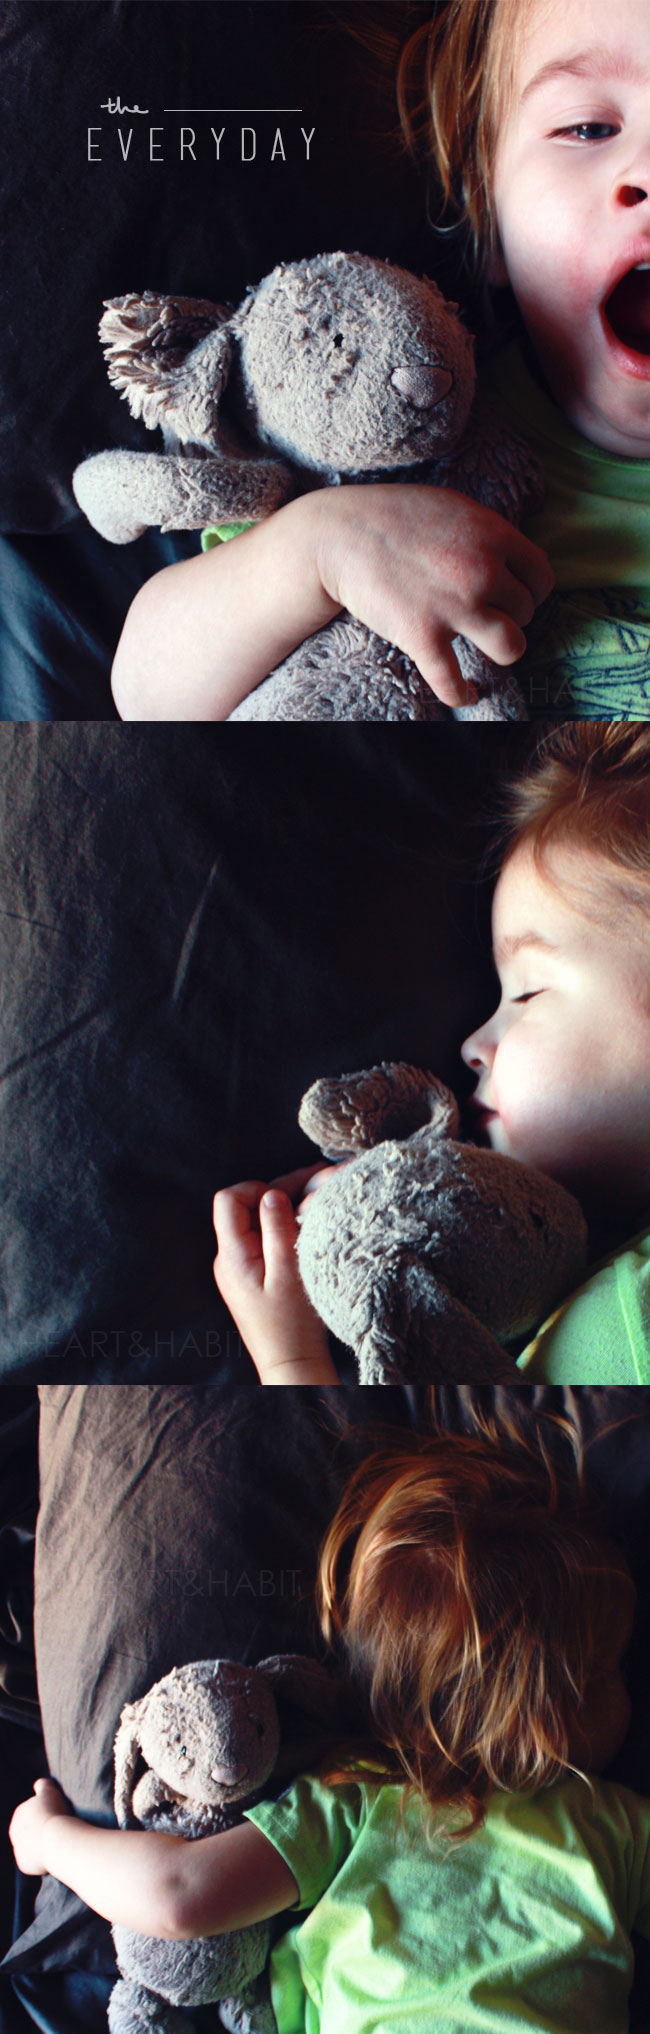 naptime, the everyday, the small moments, sleeping toddler, bunny love